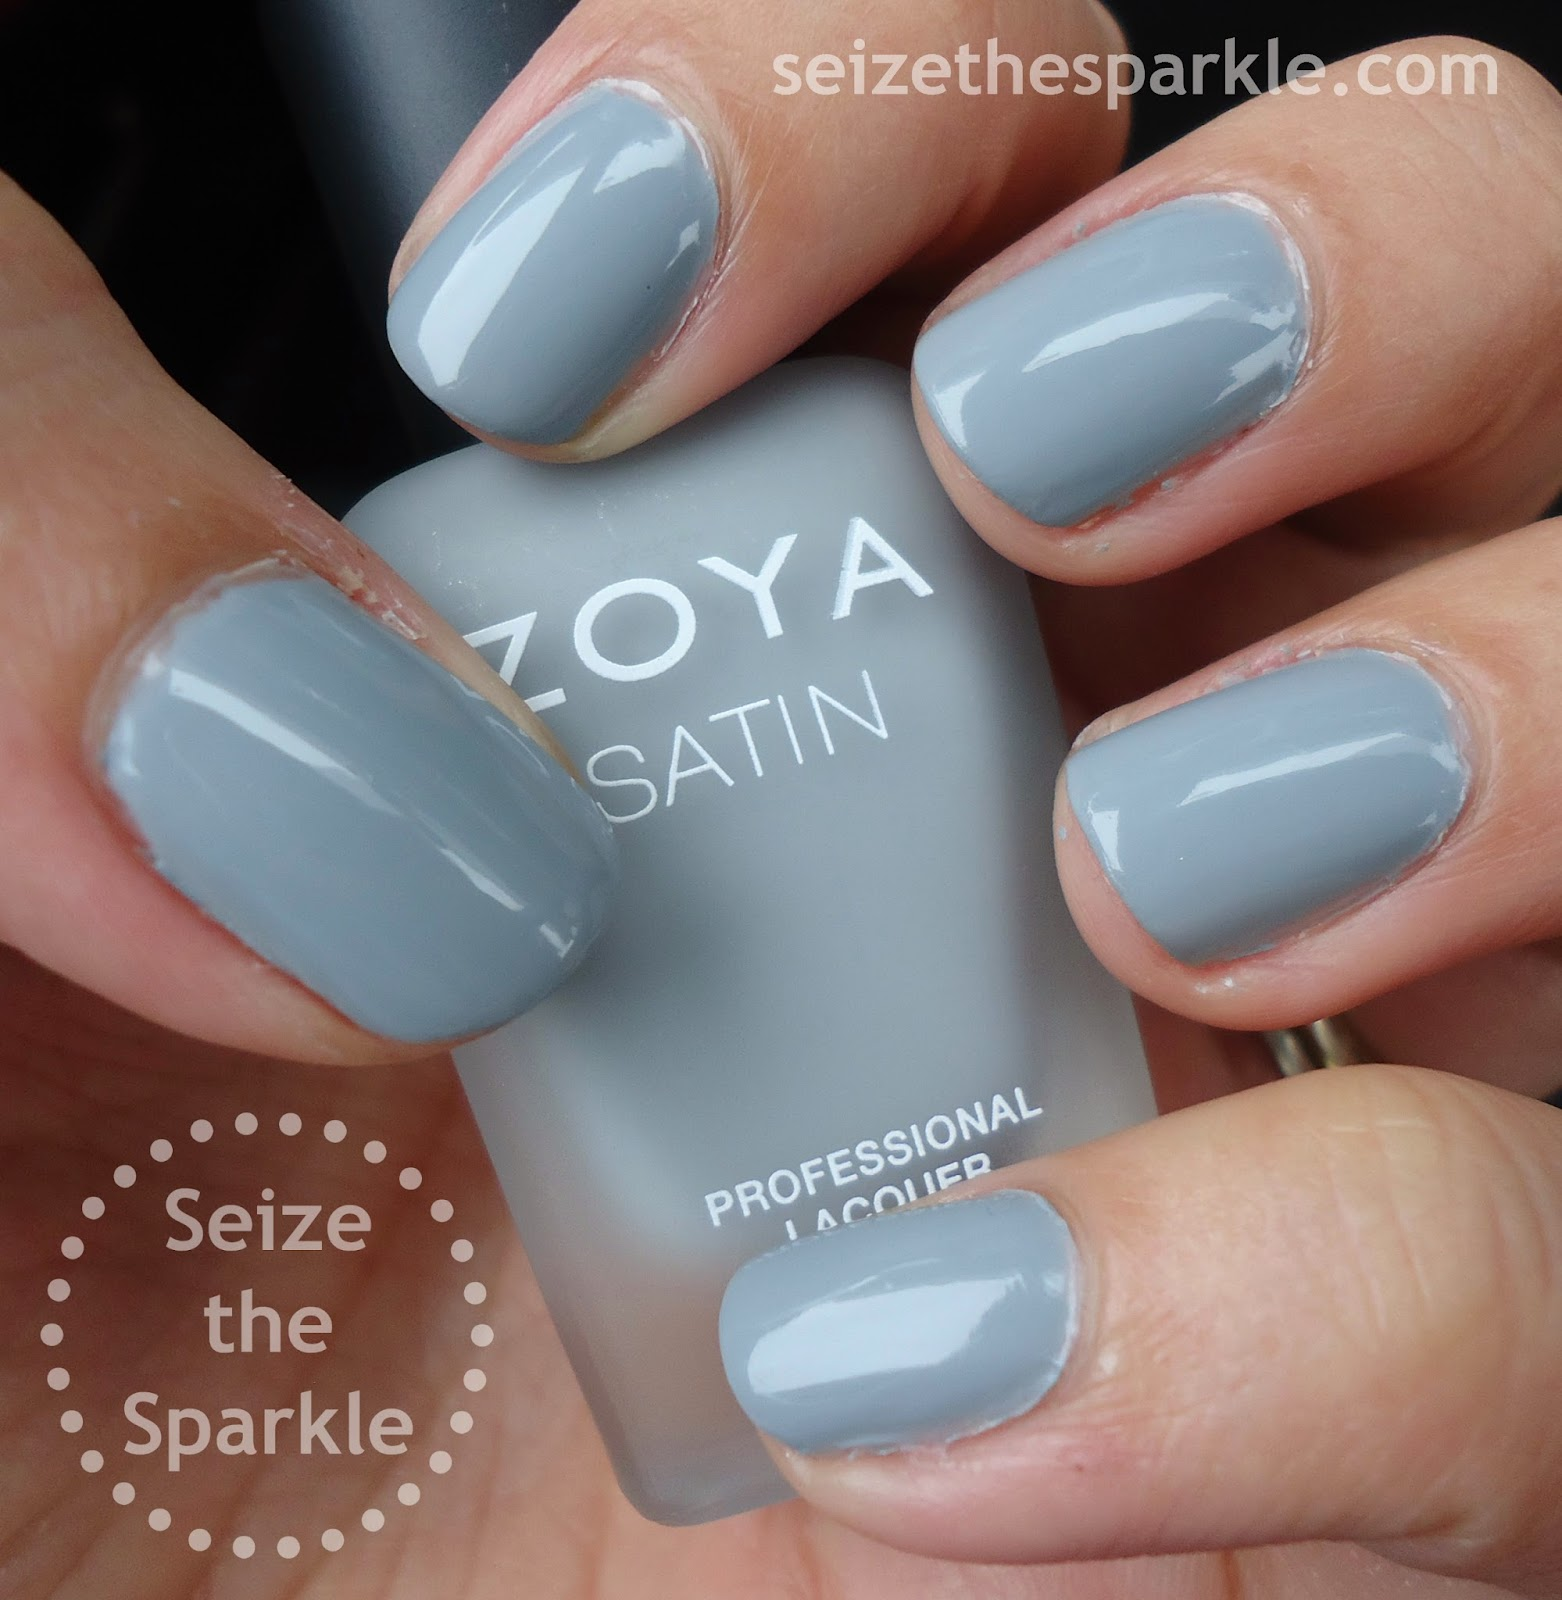 Tove by Zoya